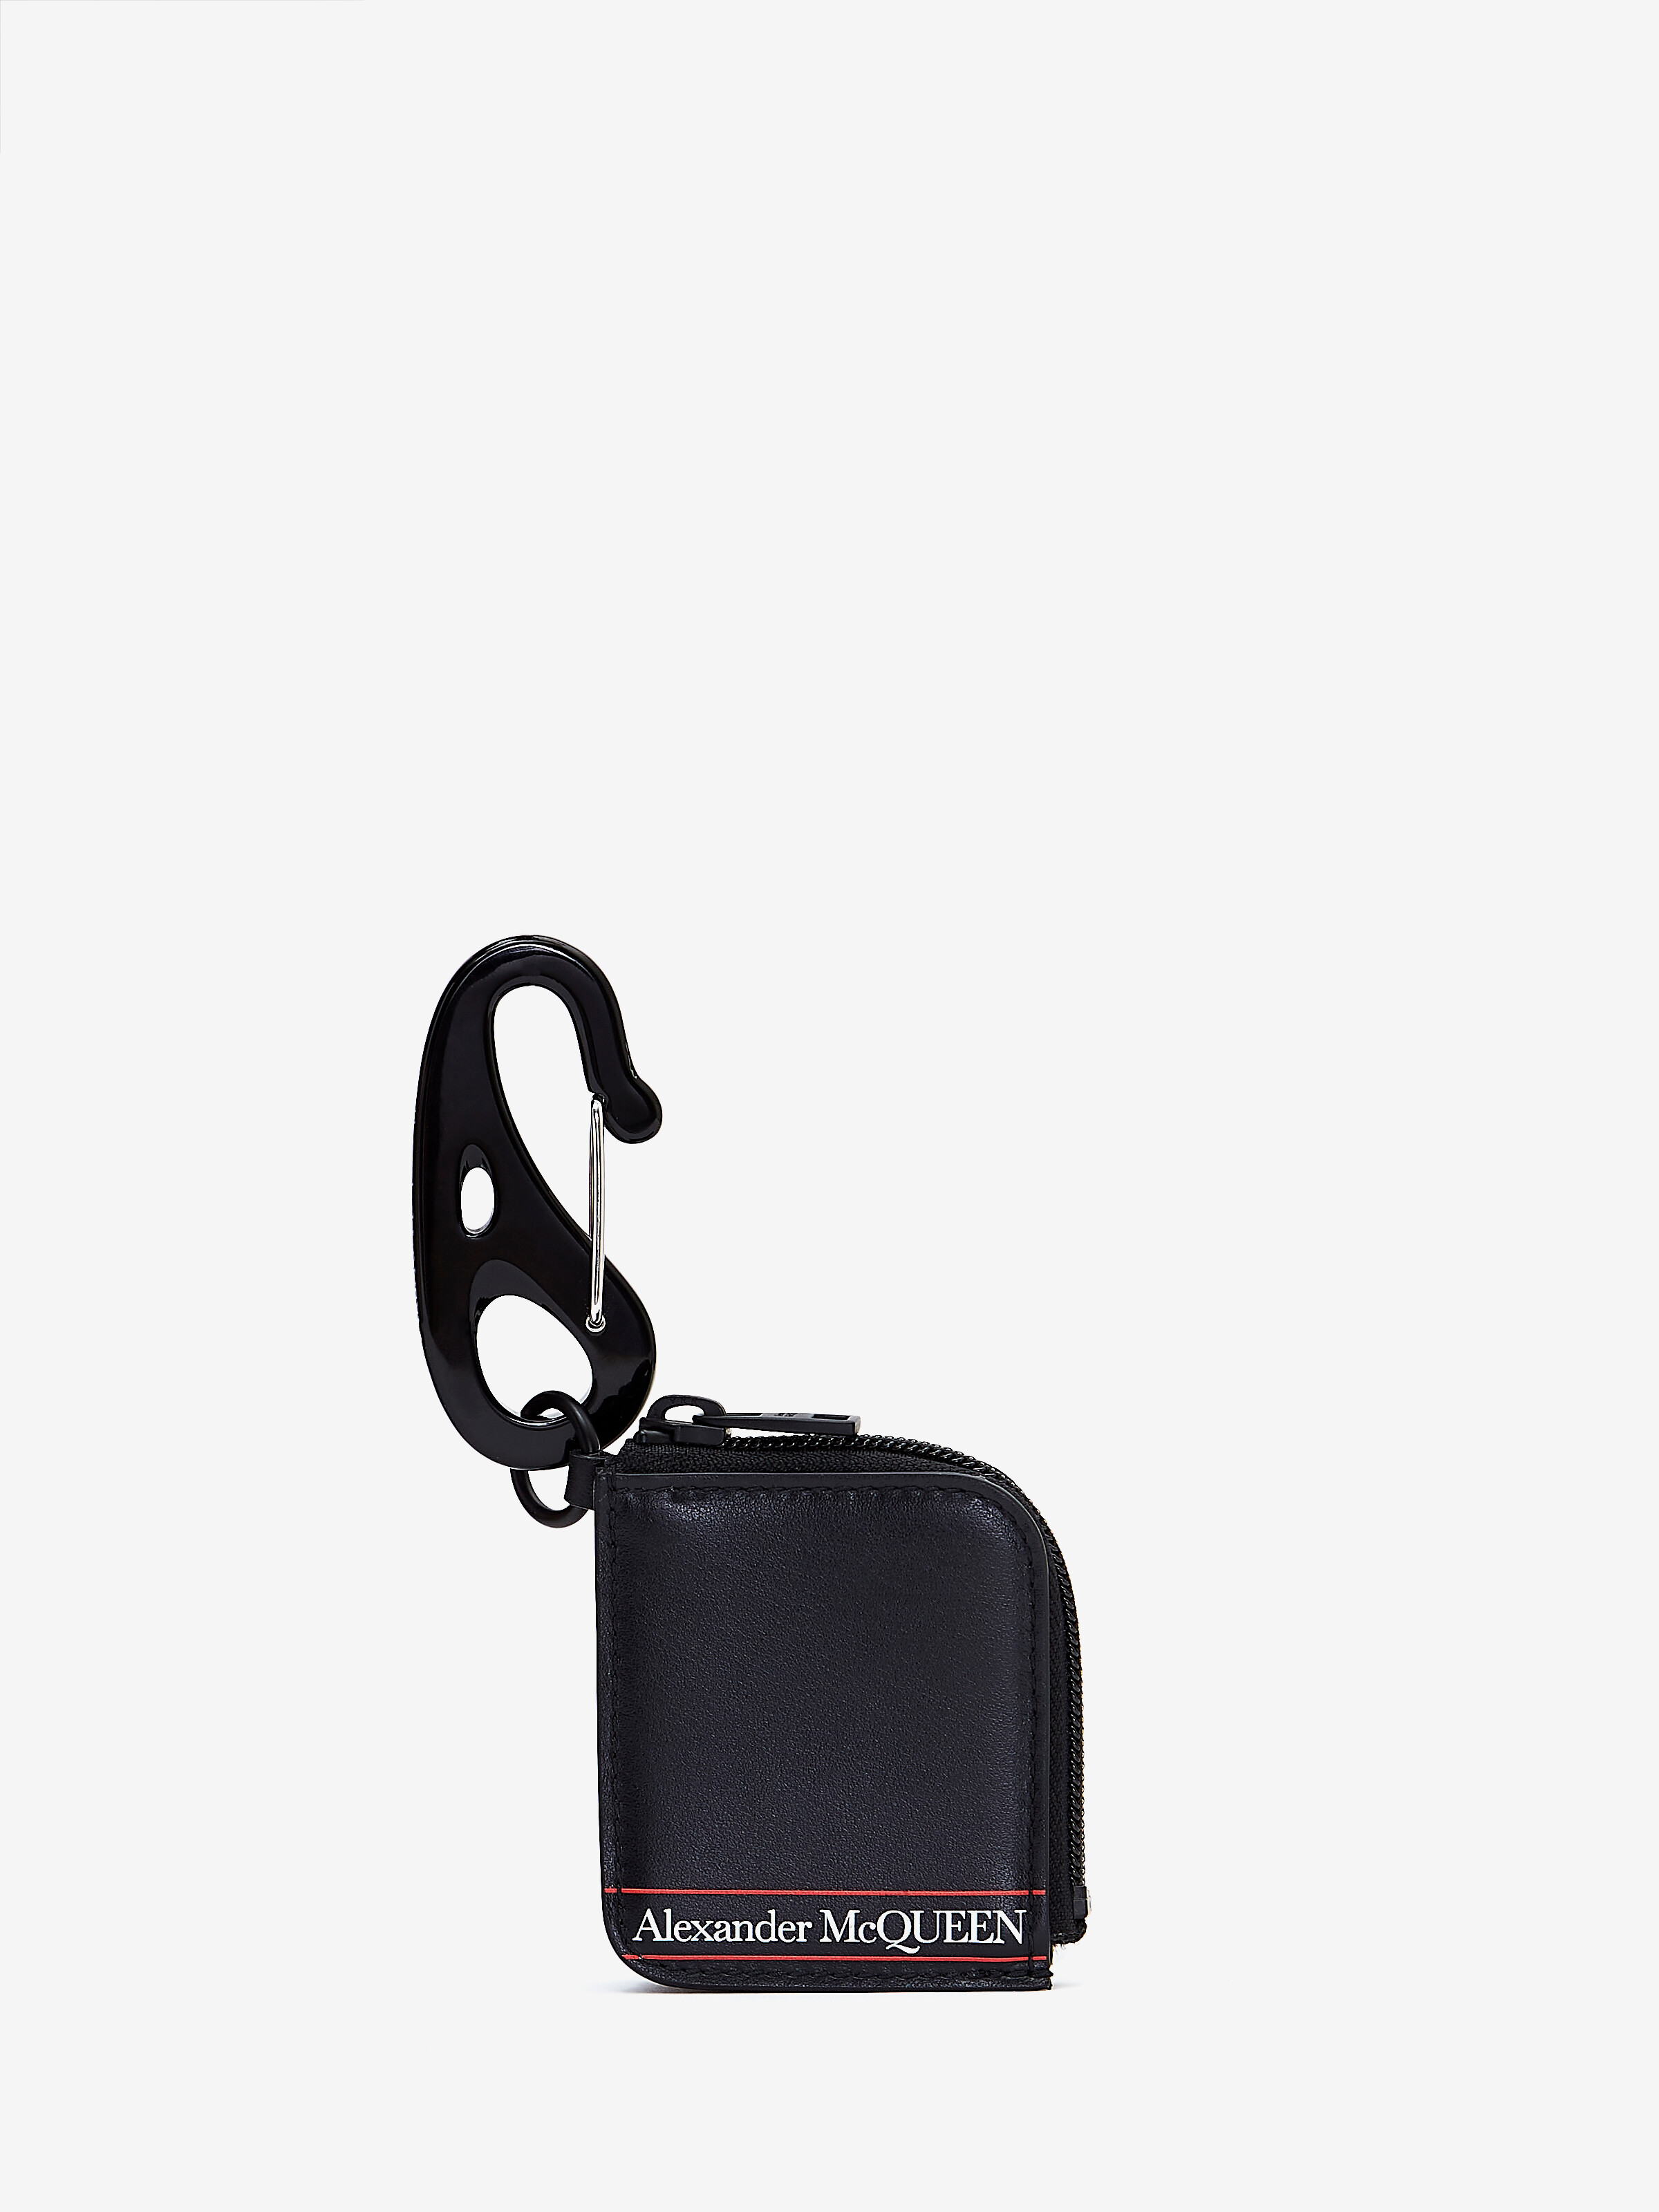 Alexander Mcqueen Man Airpod Case With  Selvedge Logo In Black/red